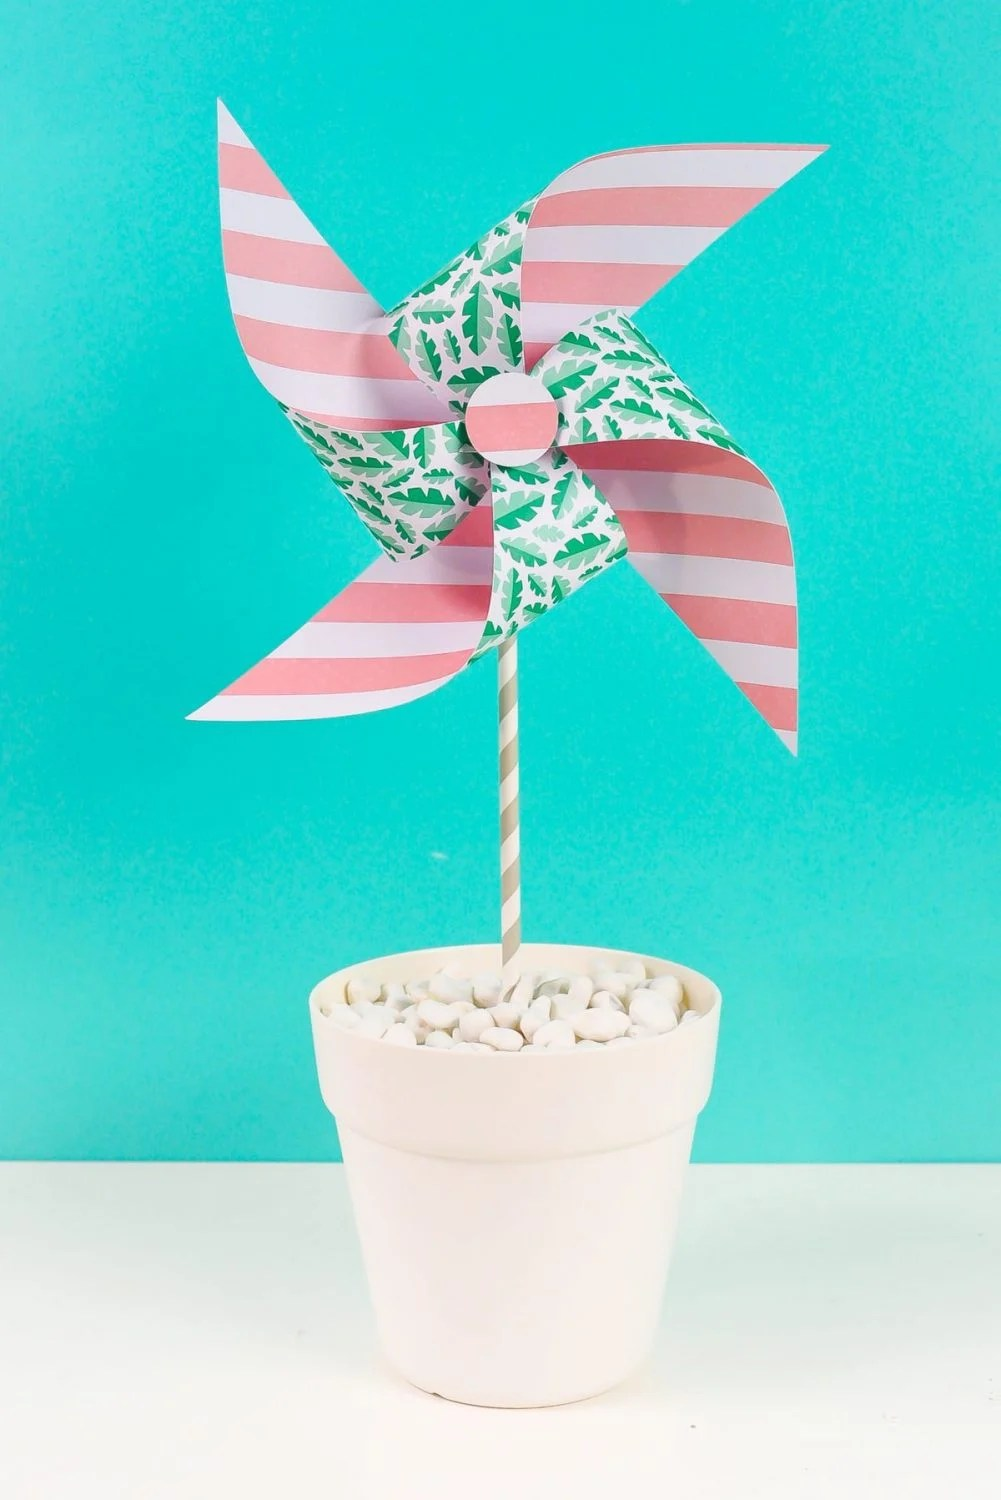 Final paper pinwheel on a teal background